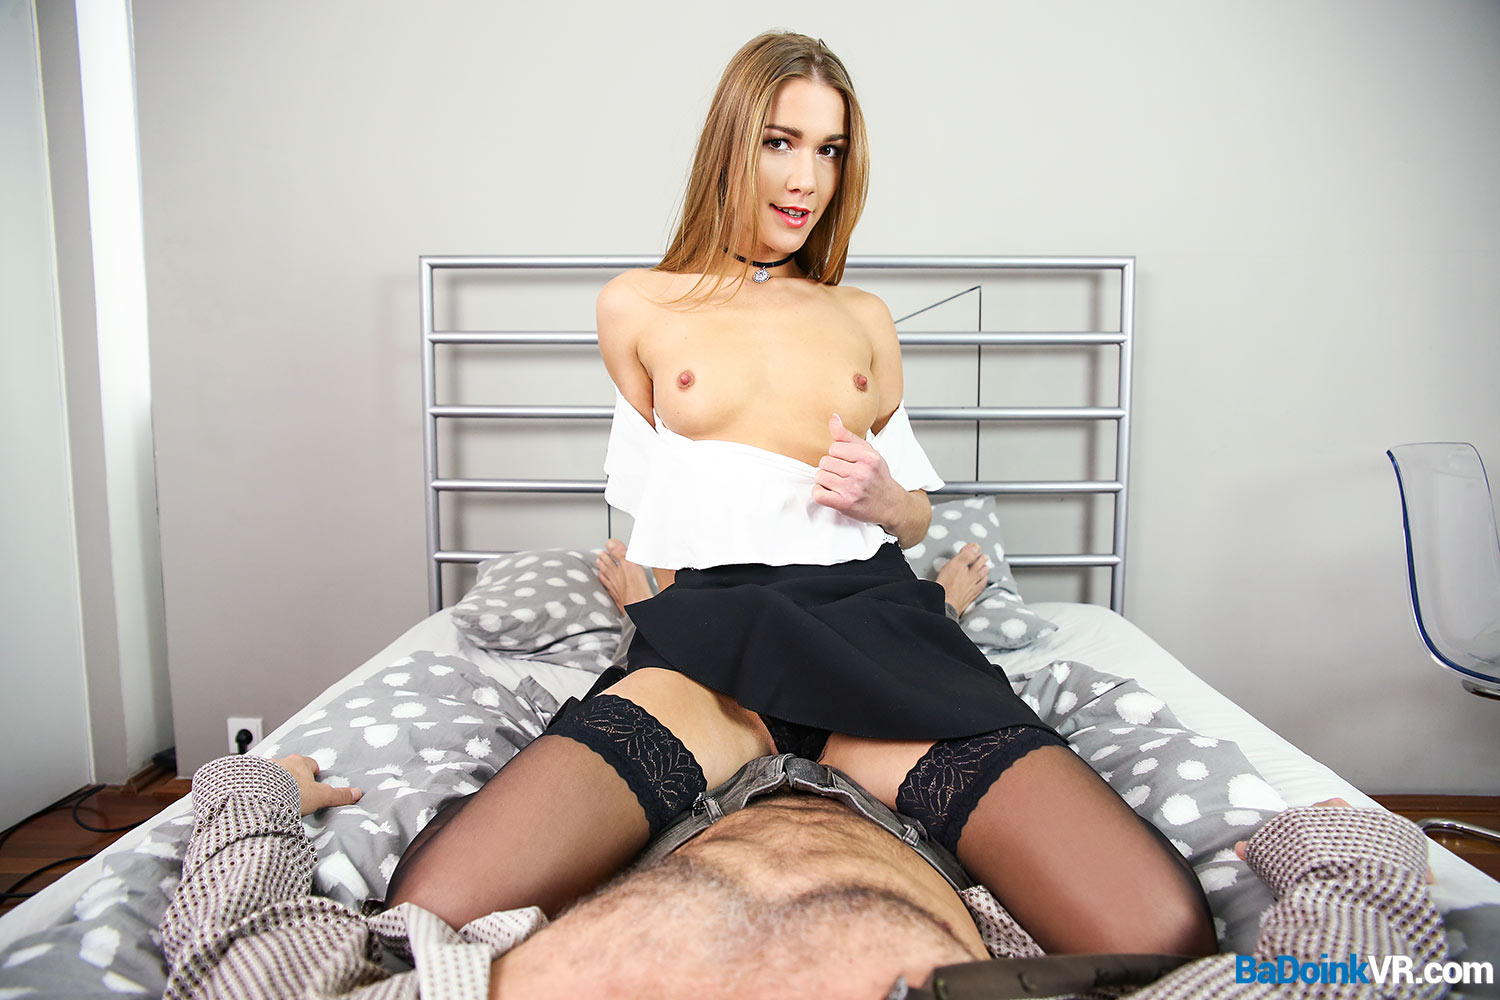 Horny chick great blowjob and hard pussy fucking 4